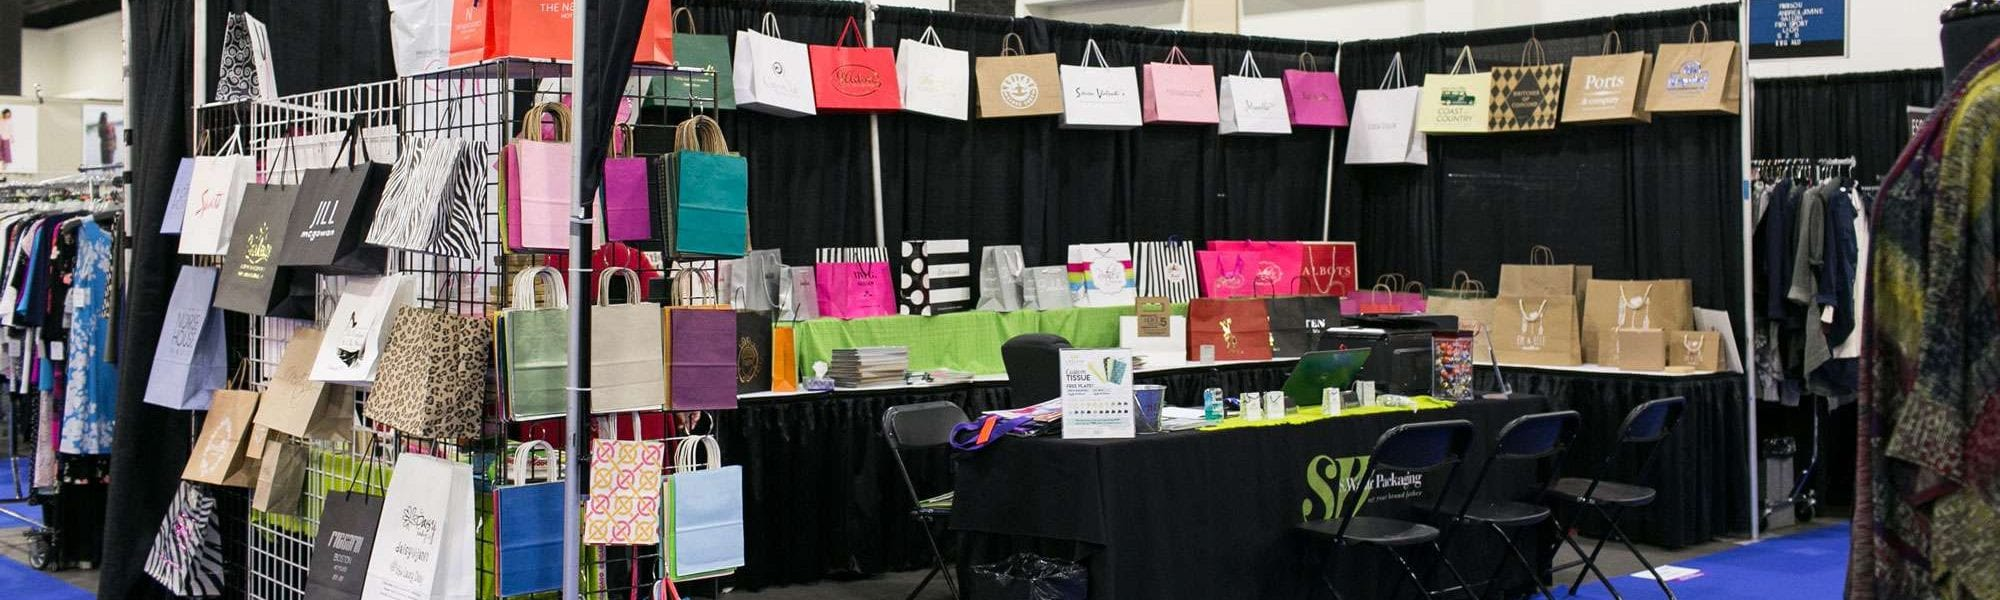 S. Walter Packaging booth on display at the New England Apparel Club's trade show at the DCU Center in Worcester, MA